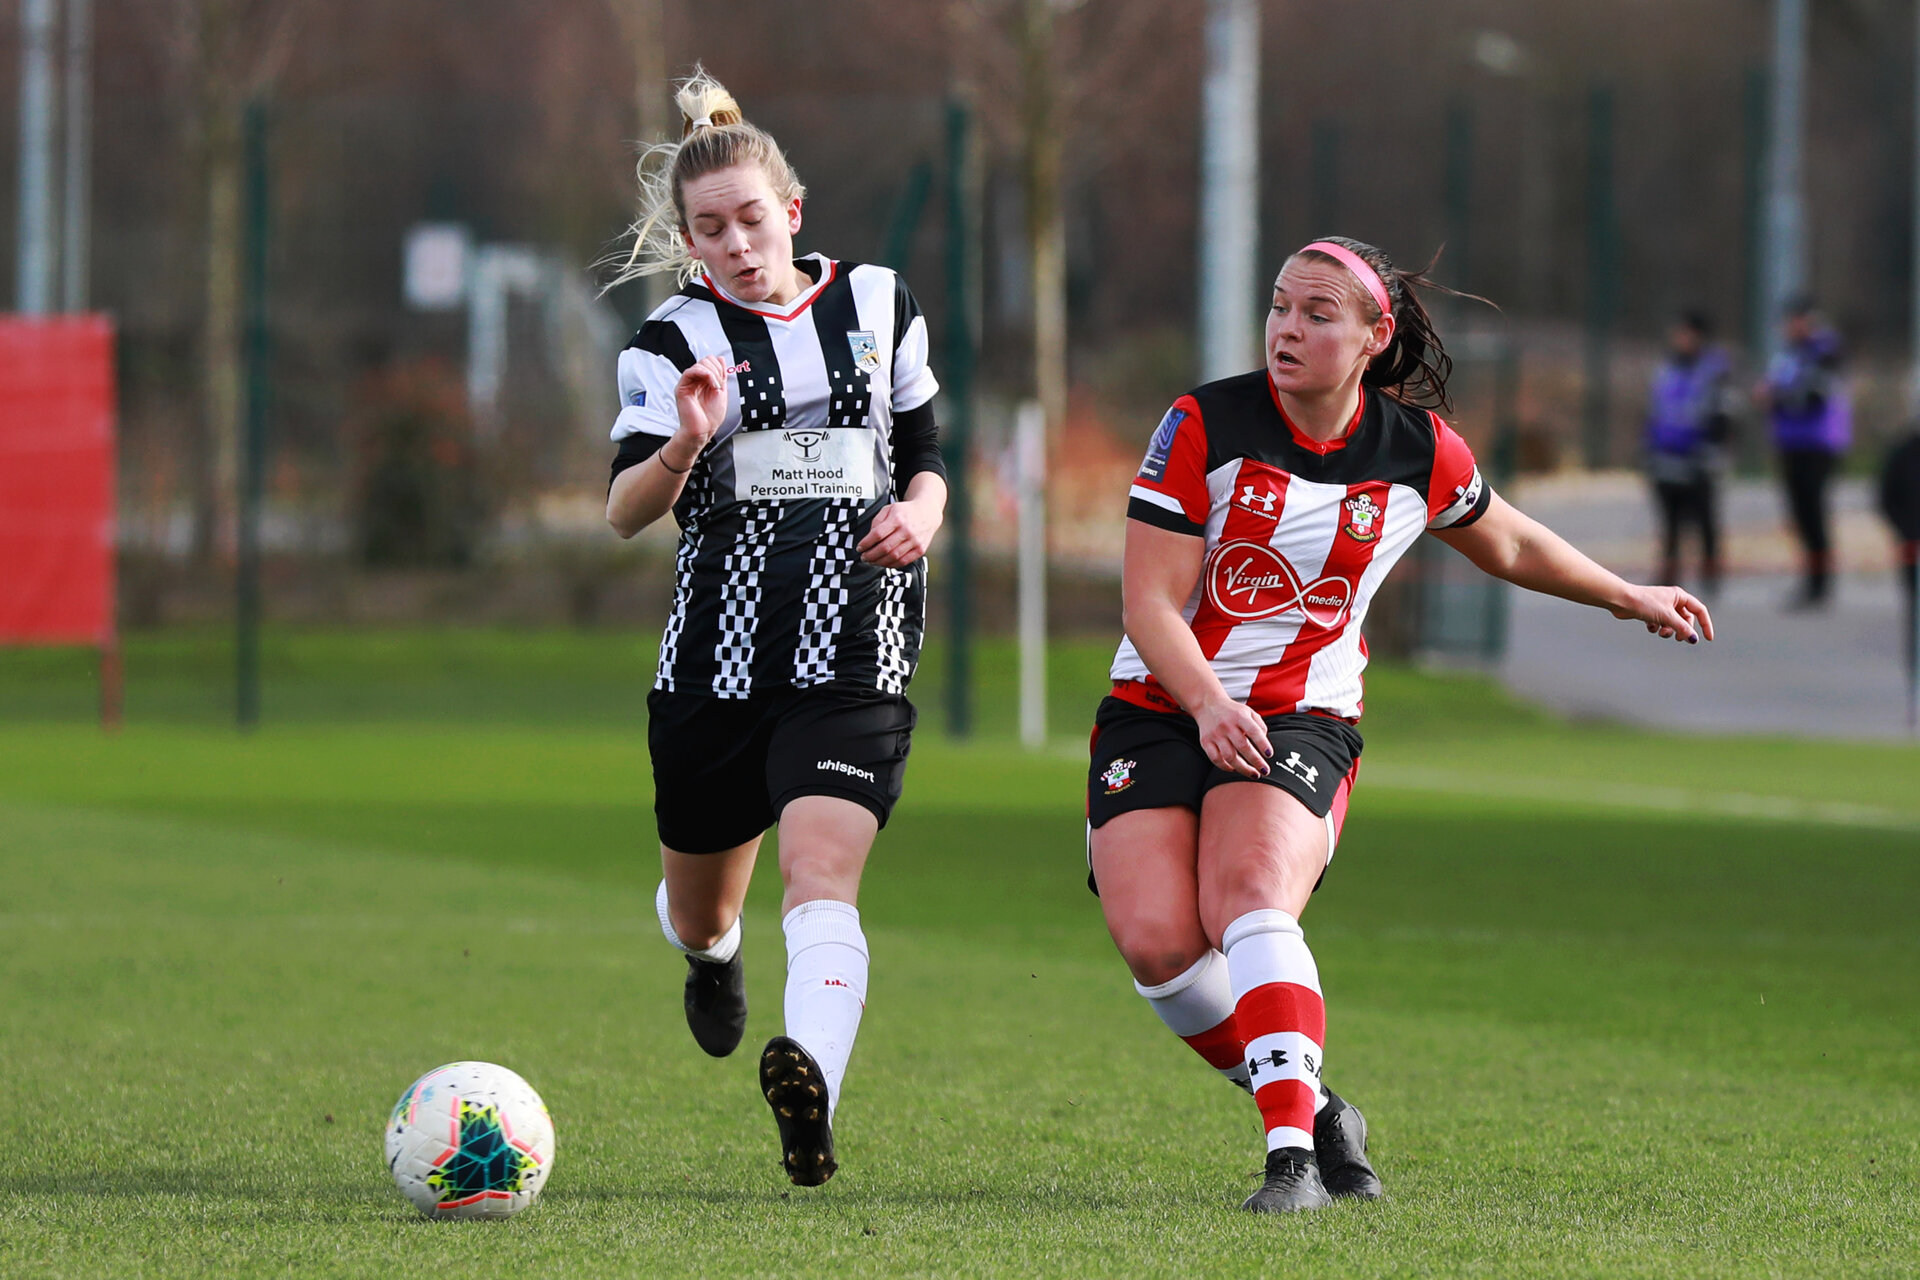 SOUTHAMPTON, ENGLAND - March 1: Shannon Sievwright of Southampton FC Womens during the FA WomenÕs National League match between Southampton Women and Maidenhead United at Staplewood Campus on March 1 2020, Exeter, England. (Photo by Tom Mulholland/Southampton FC) SOUTHAMPTON, ENGLAND - March 1: Shannon Sievwright of Southampton FC Womens during the FA Women's National League match between Southampton Women and Maidenhead United at Staplewood Campus on March 1 2020, Exeter, England. (Photo by Tom Mulholland/Southampton FC)